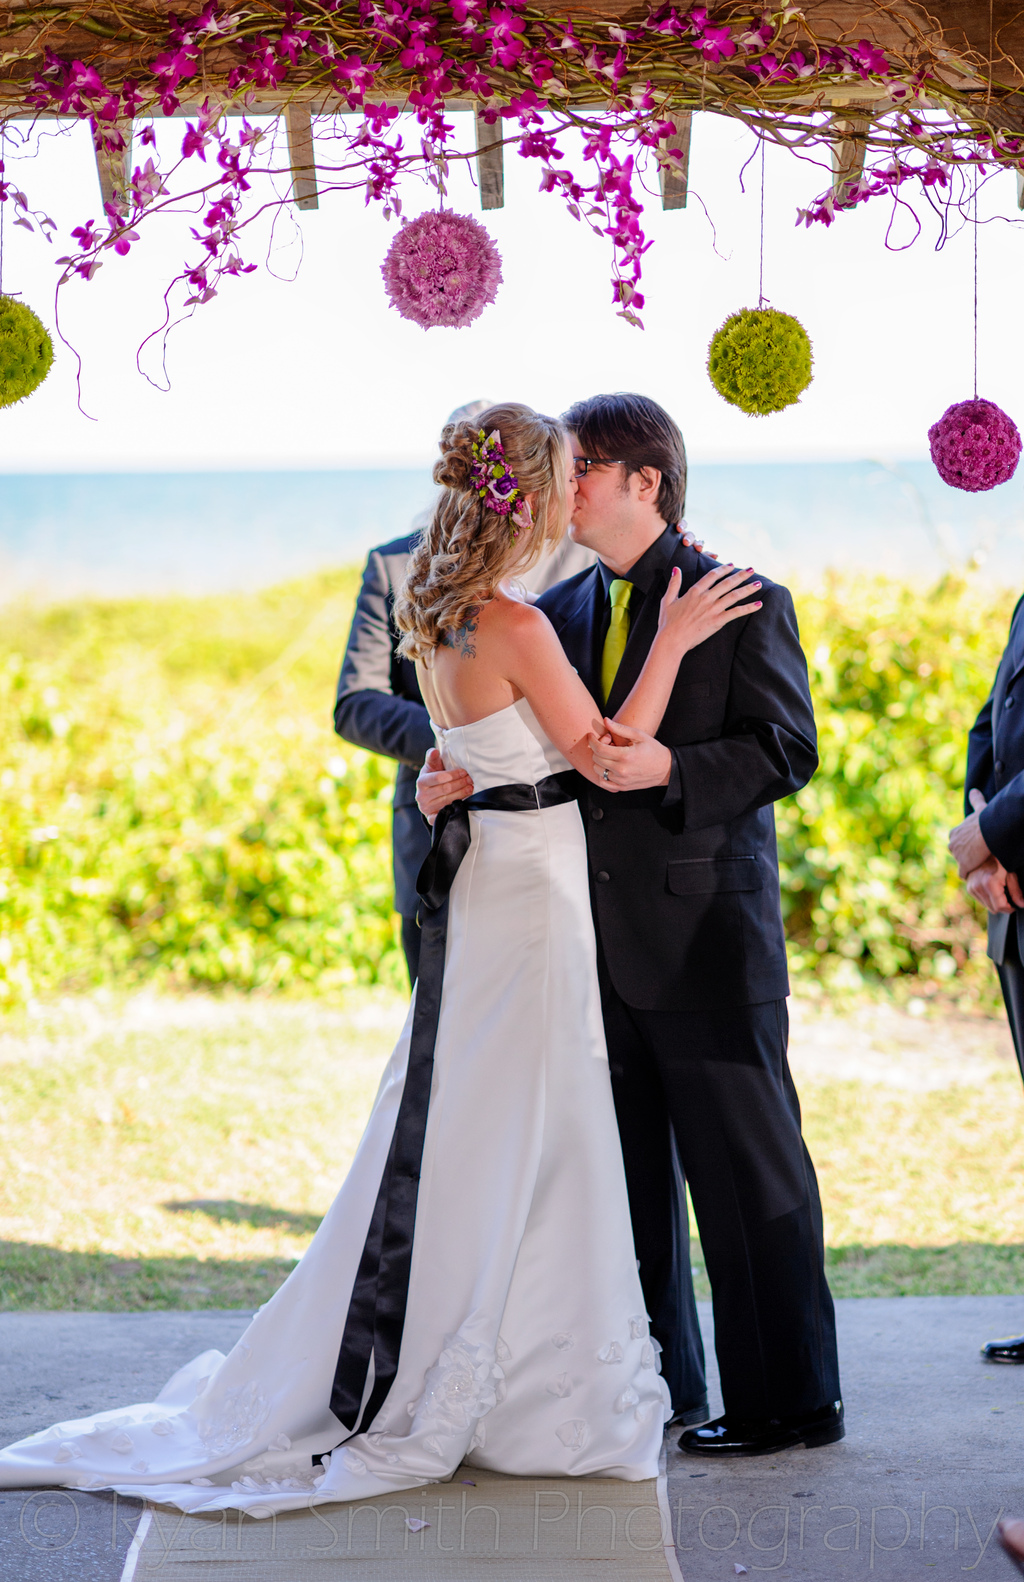 First kiss - Myrtle Beach State Park_7075299421_o